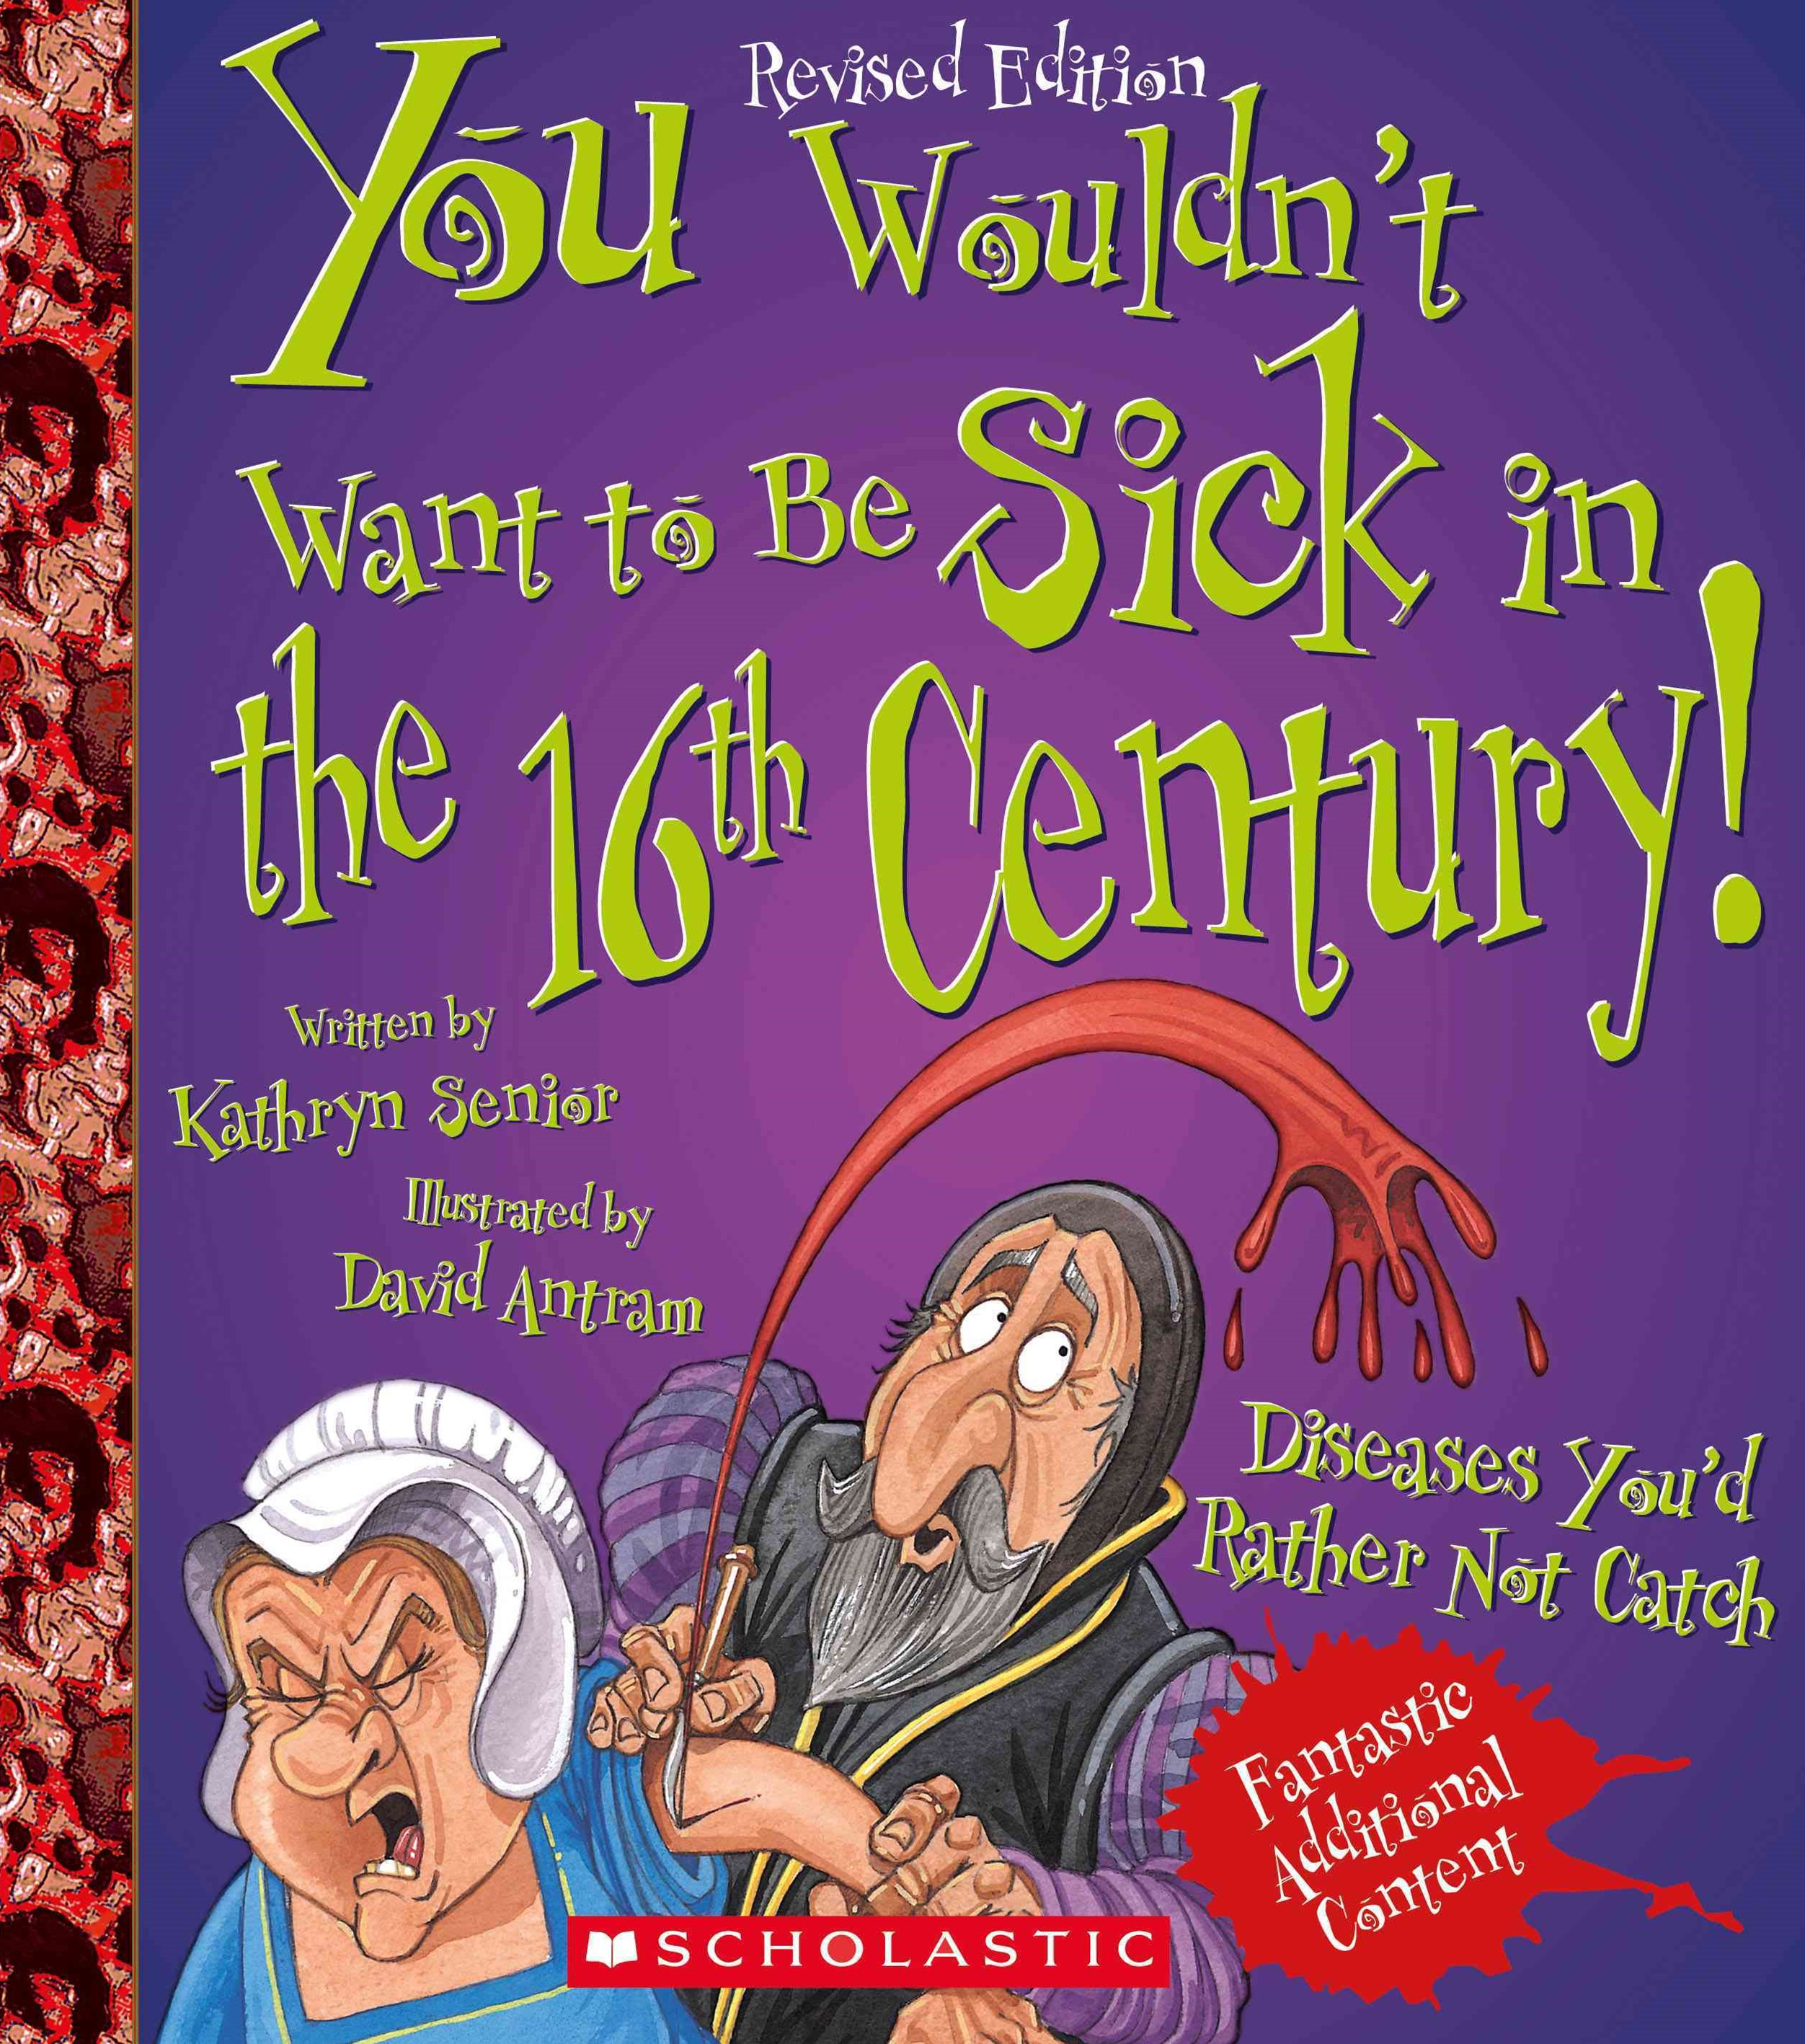 You Wouldn't Want to Be Sick in the 16th Century! (Revised Edition)